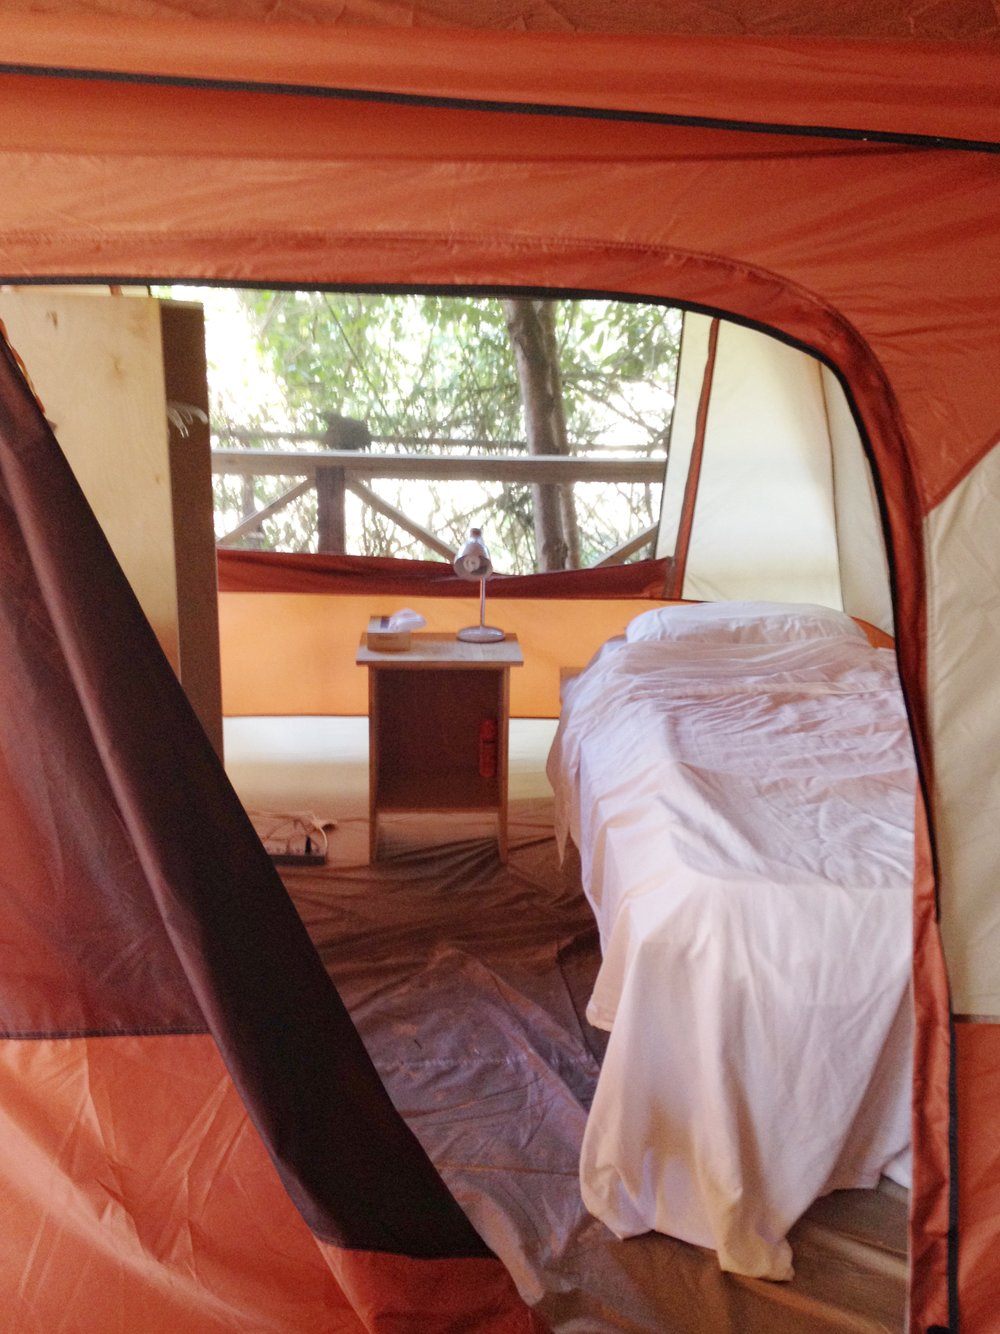 JasonShow 7 Staying in a Tent in Bahamas.jpg